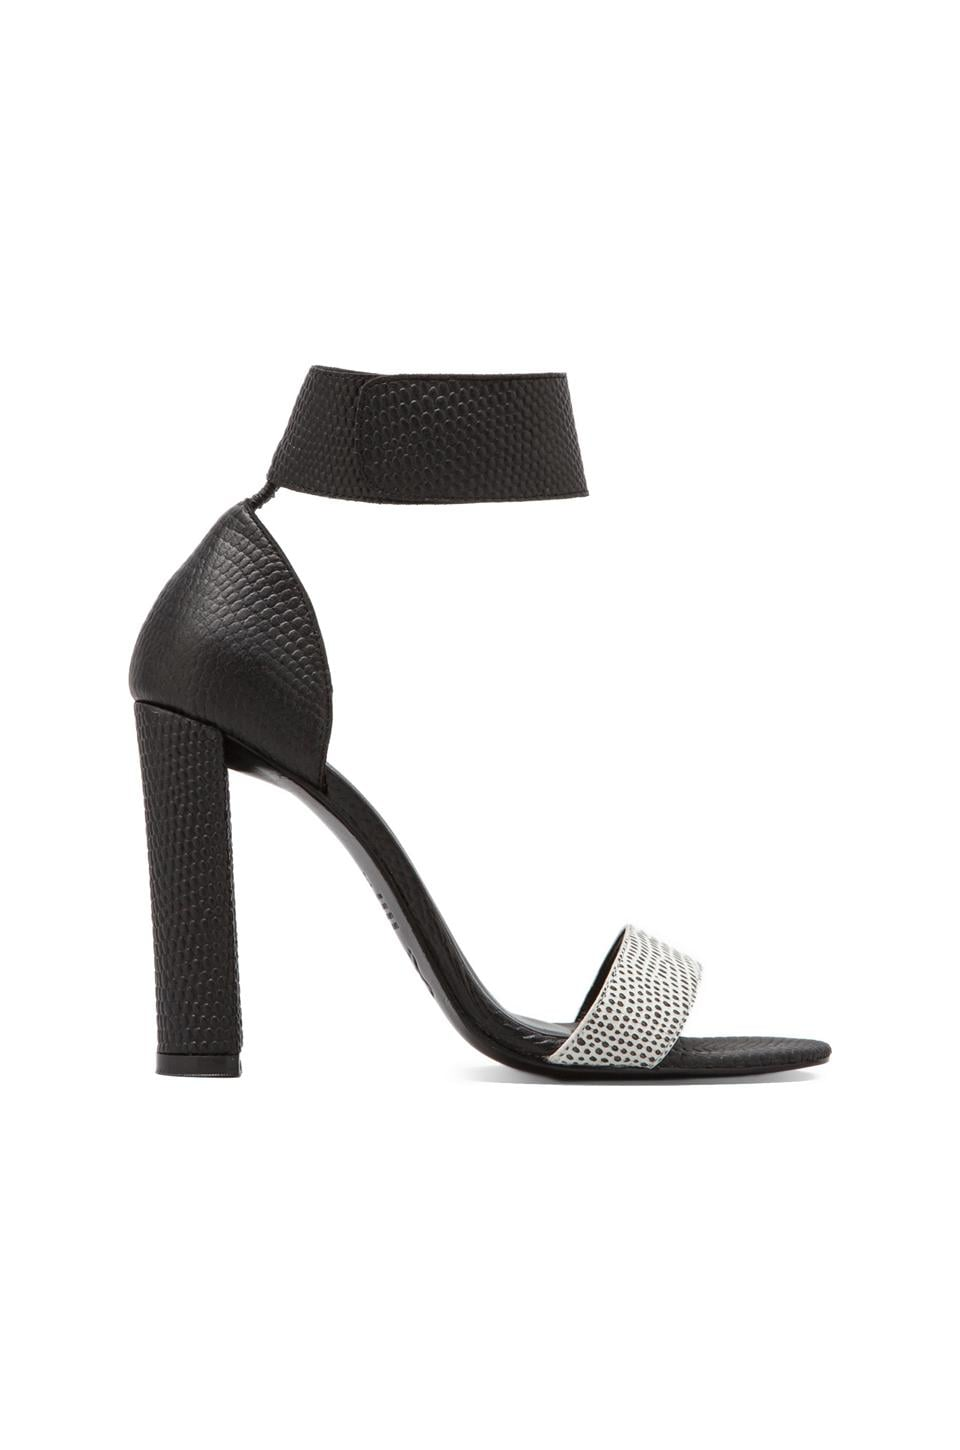 NICHOLAS Hari Pump in Black/White Lizard